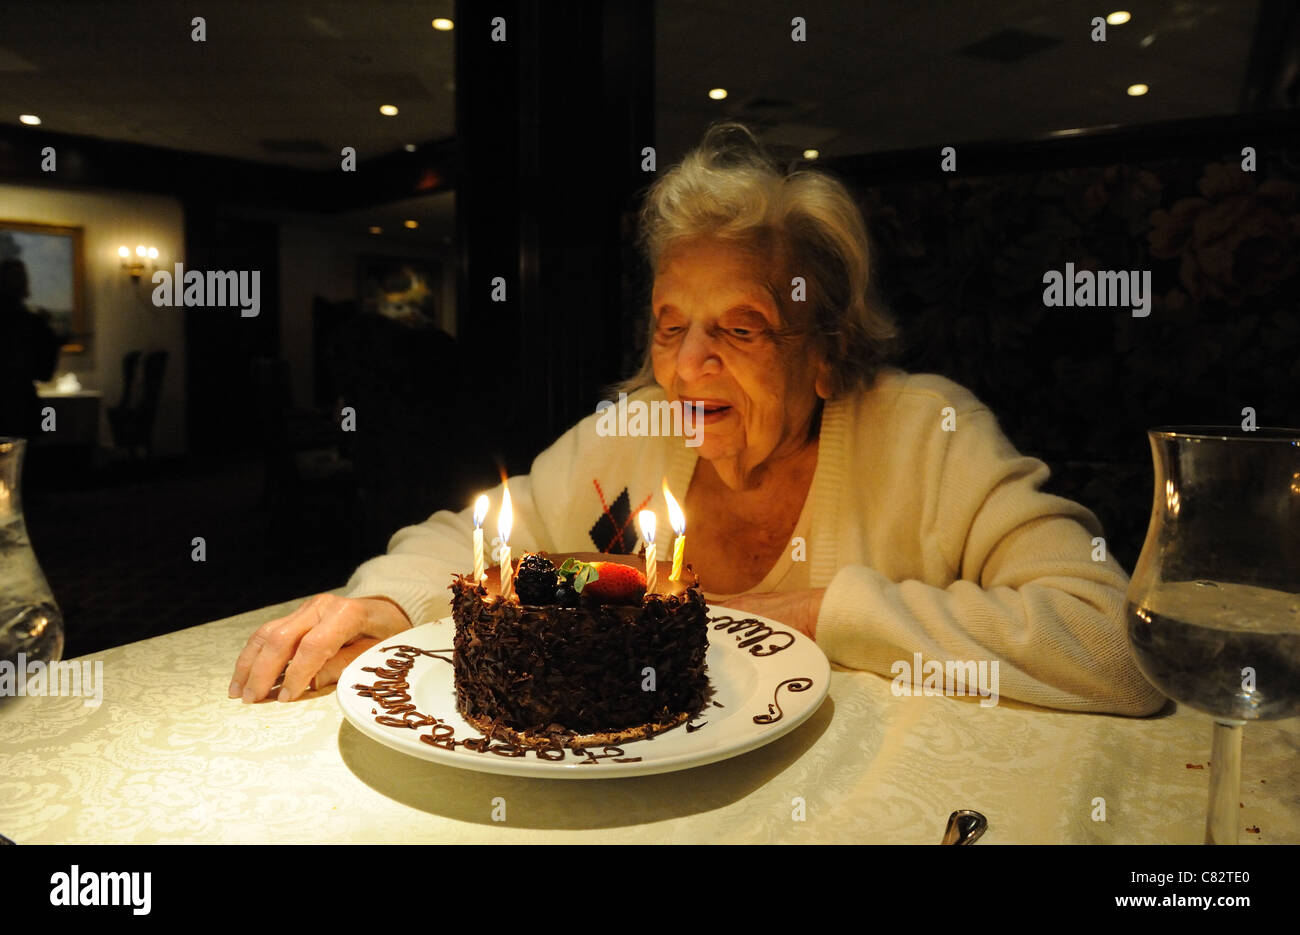 An Elderly Woman With A Cake In Celebration Of Her 95th Birthday Oct 8